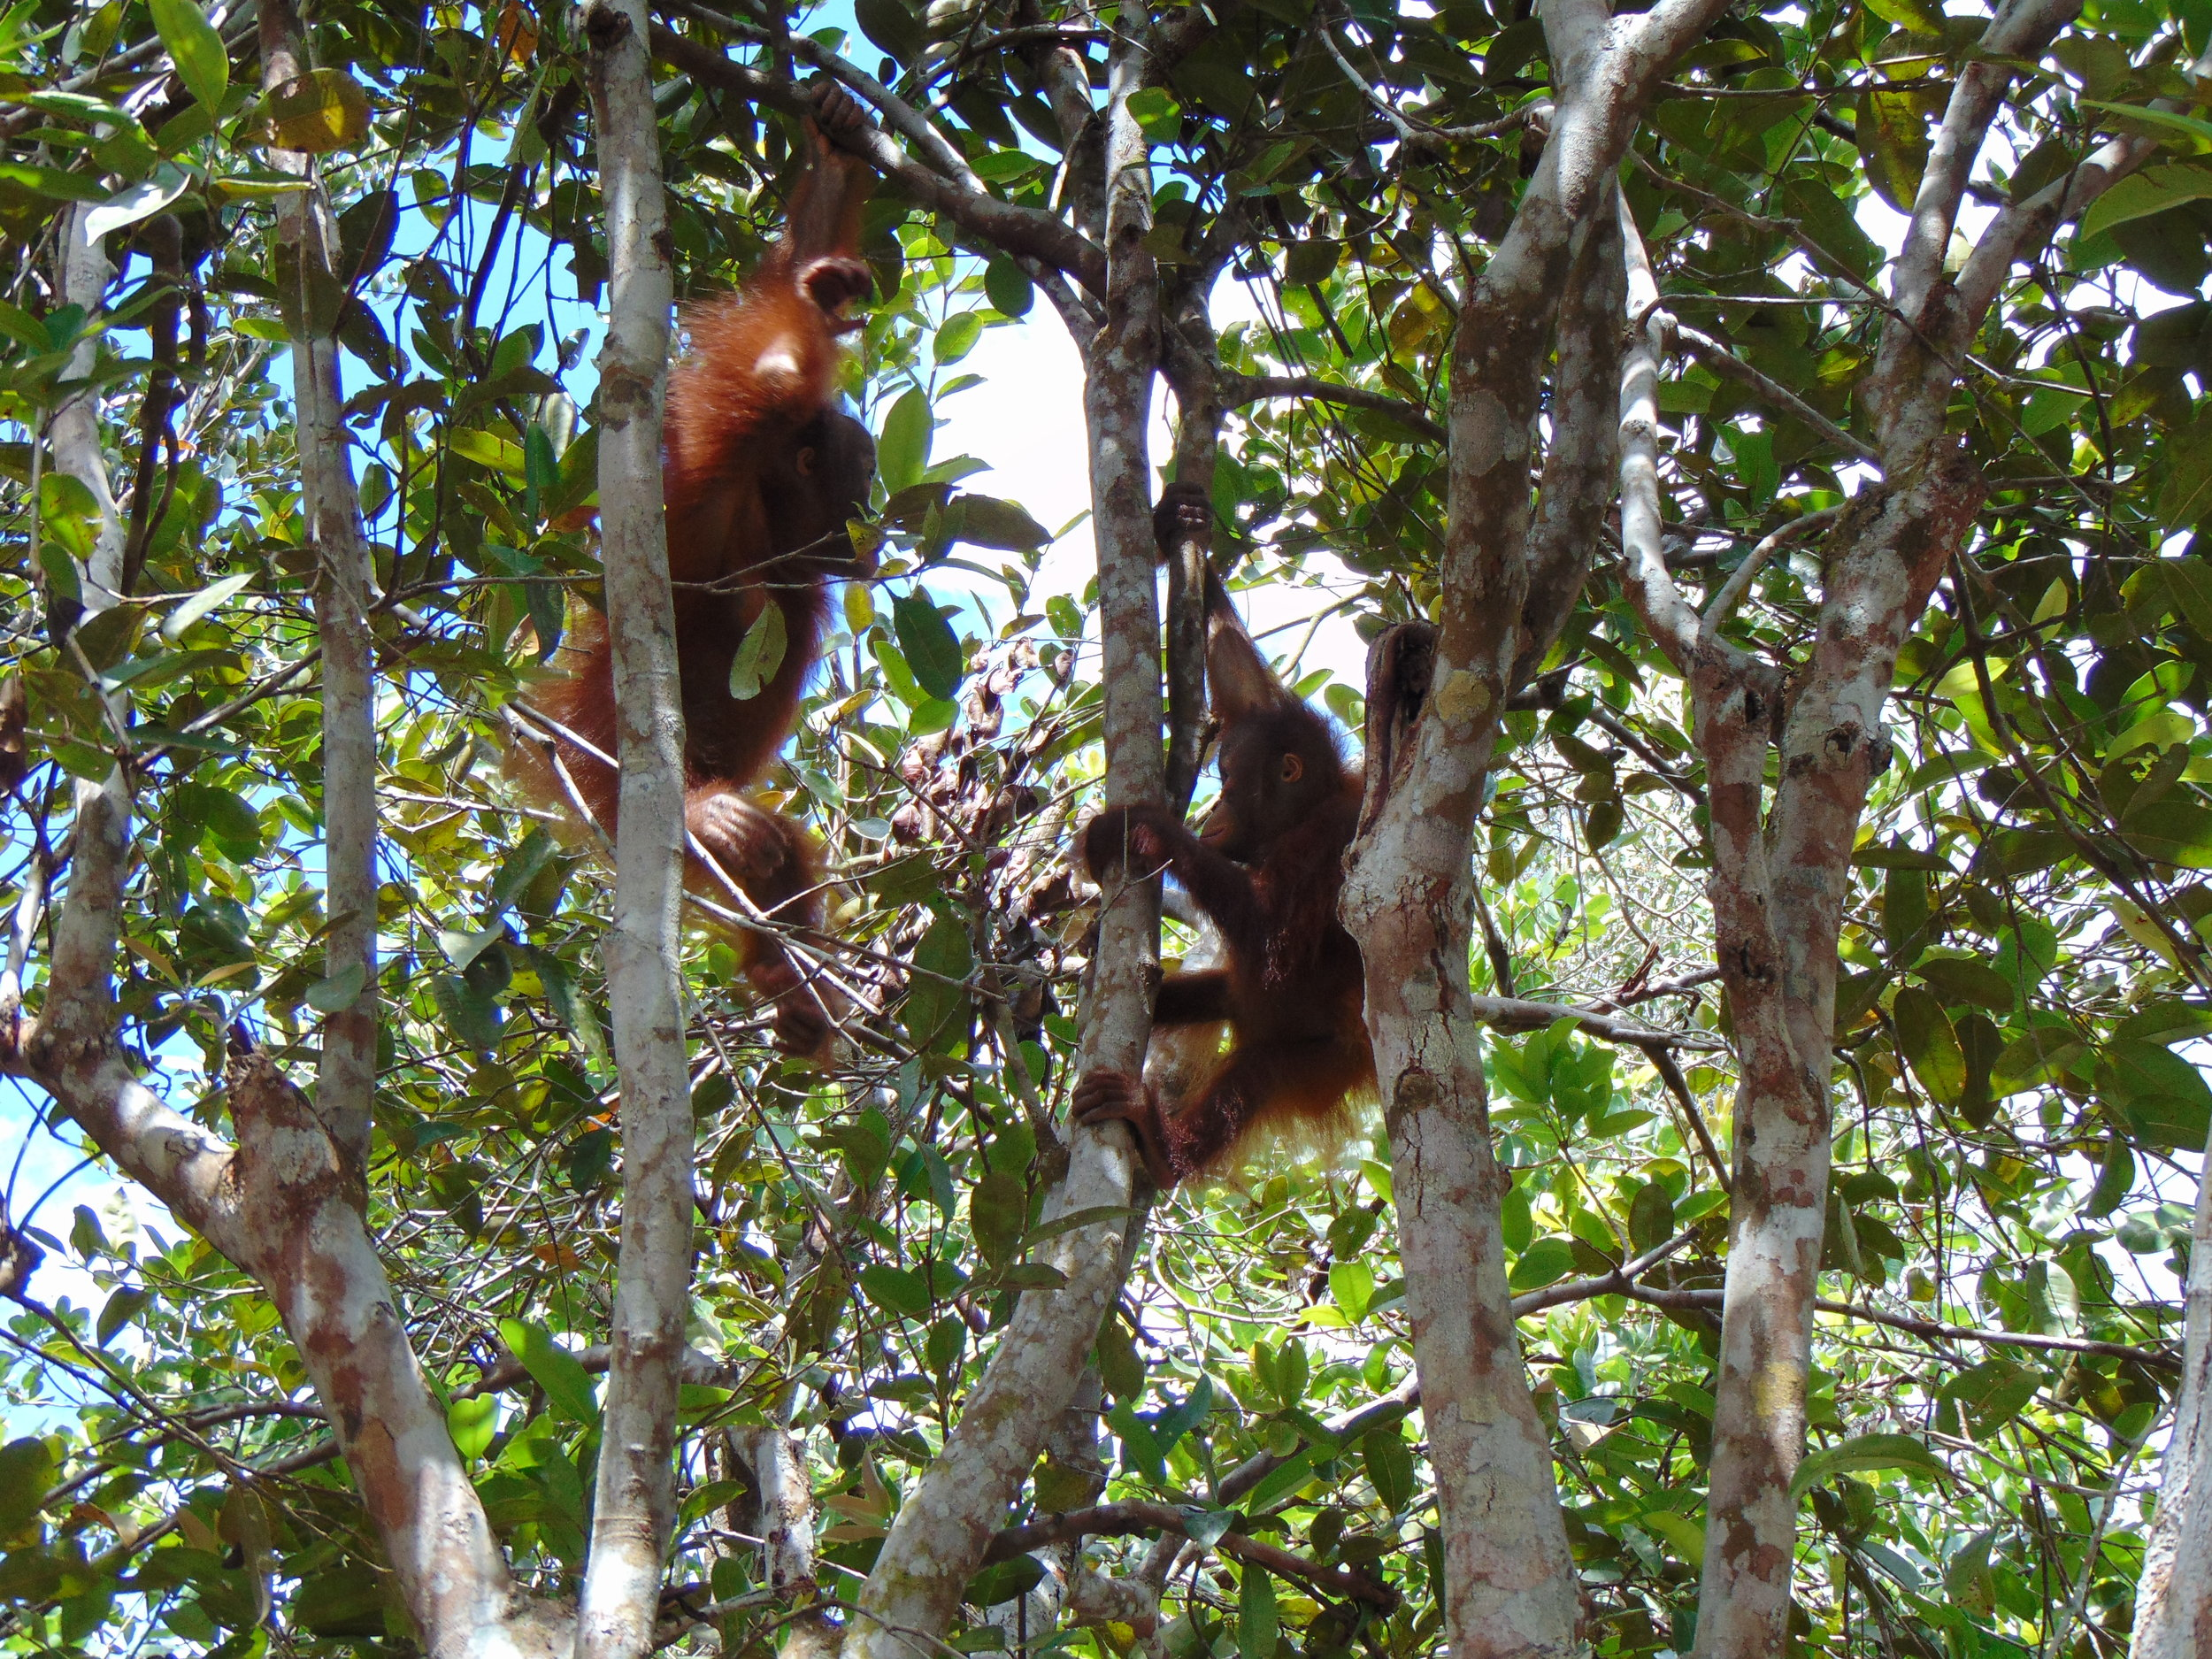 Second stop, Camp JL - young orphaned orangutans 5 year old Nyunyu (left) and 3.5 year old Mona (right) playing in the trees.